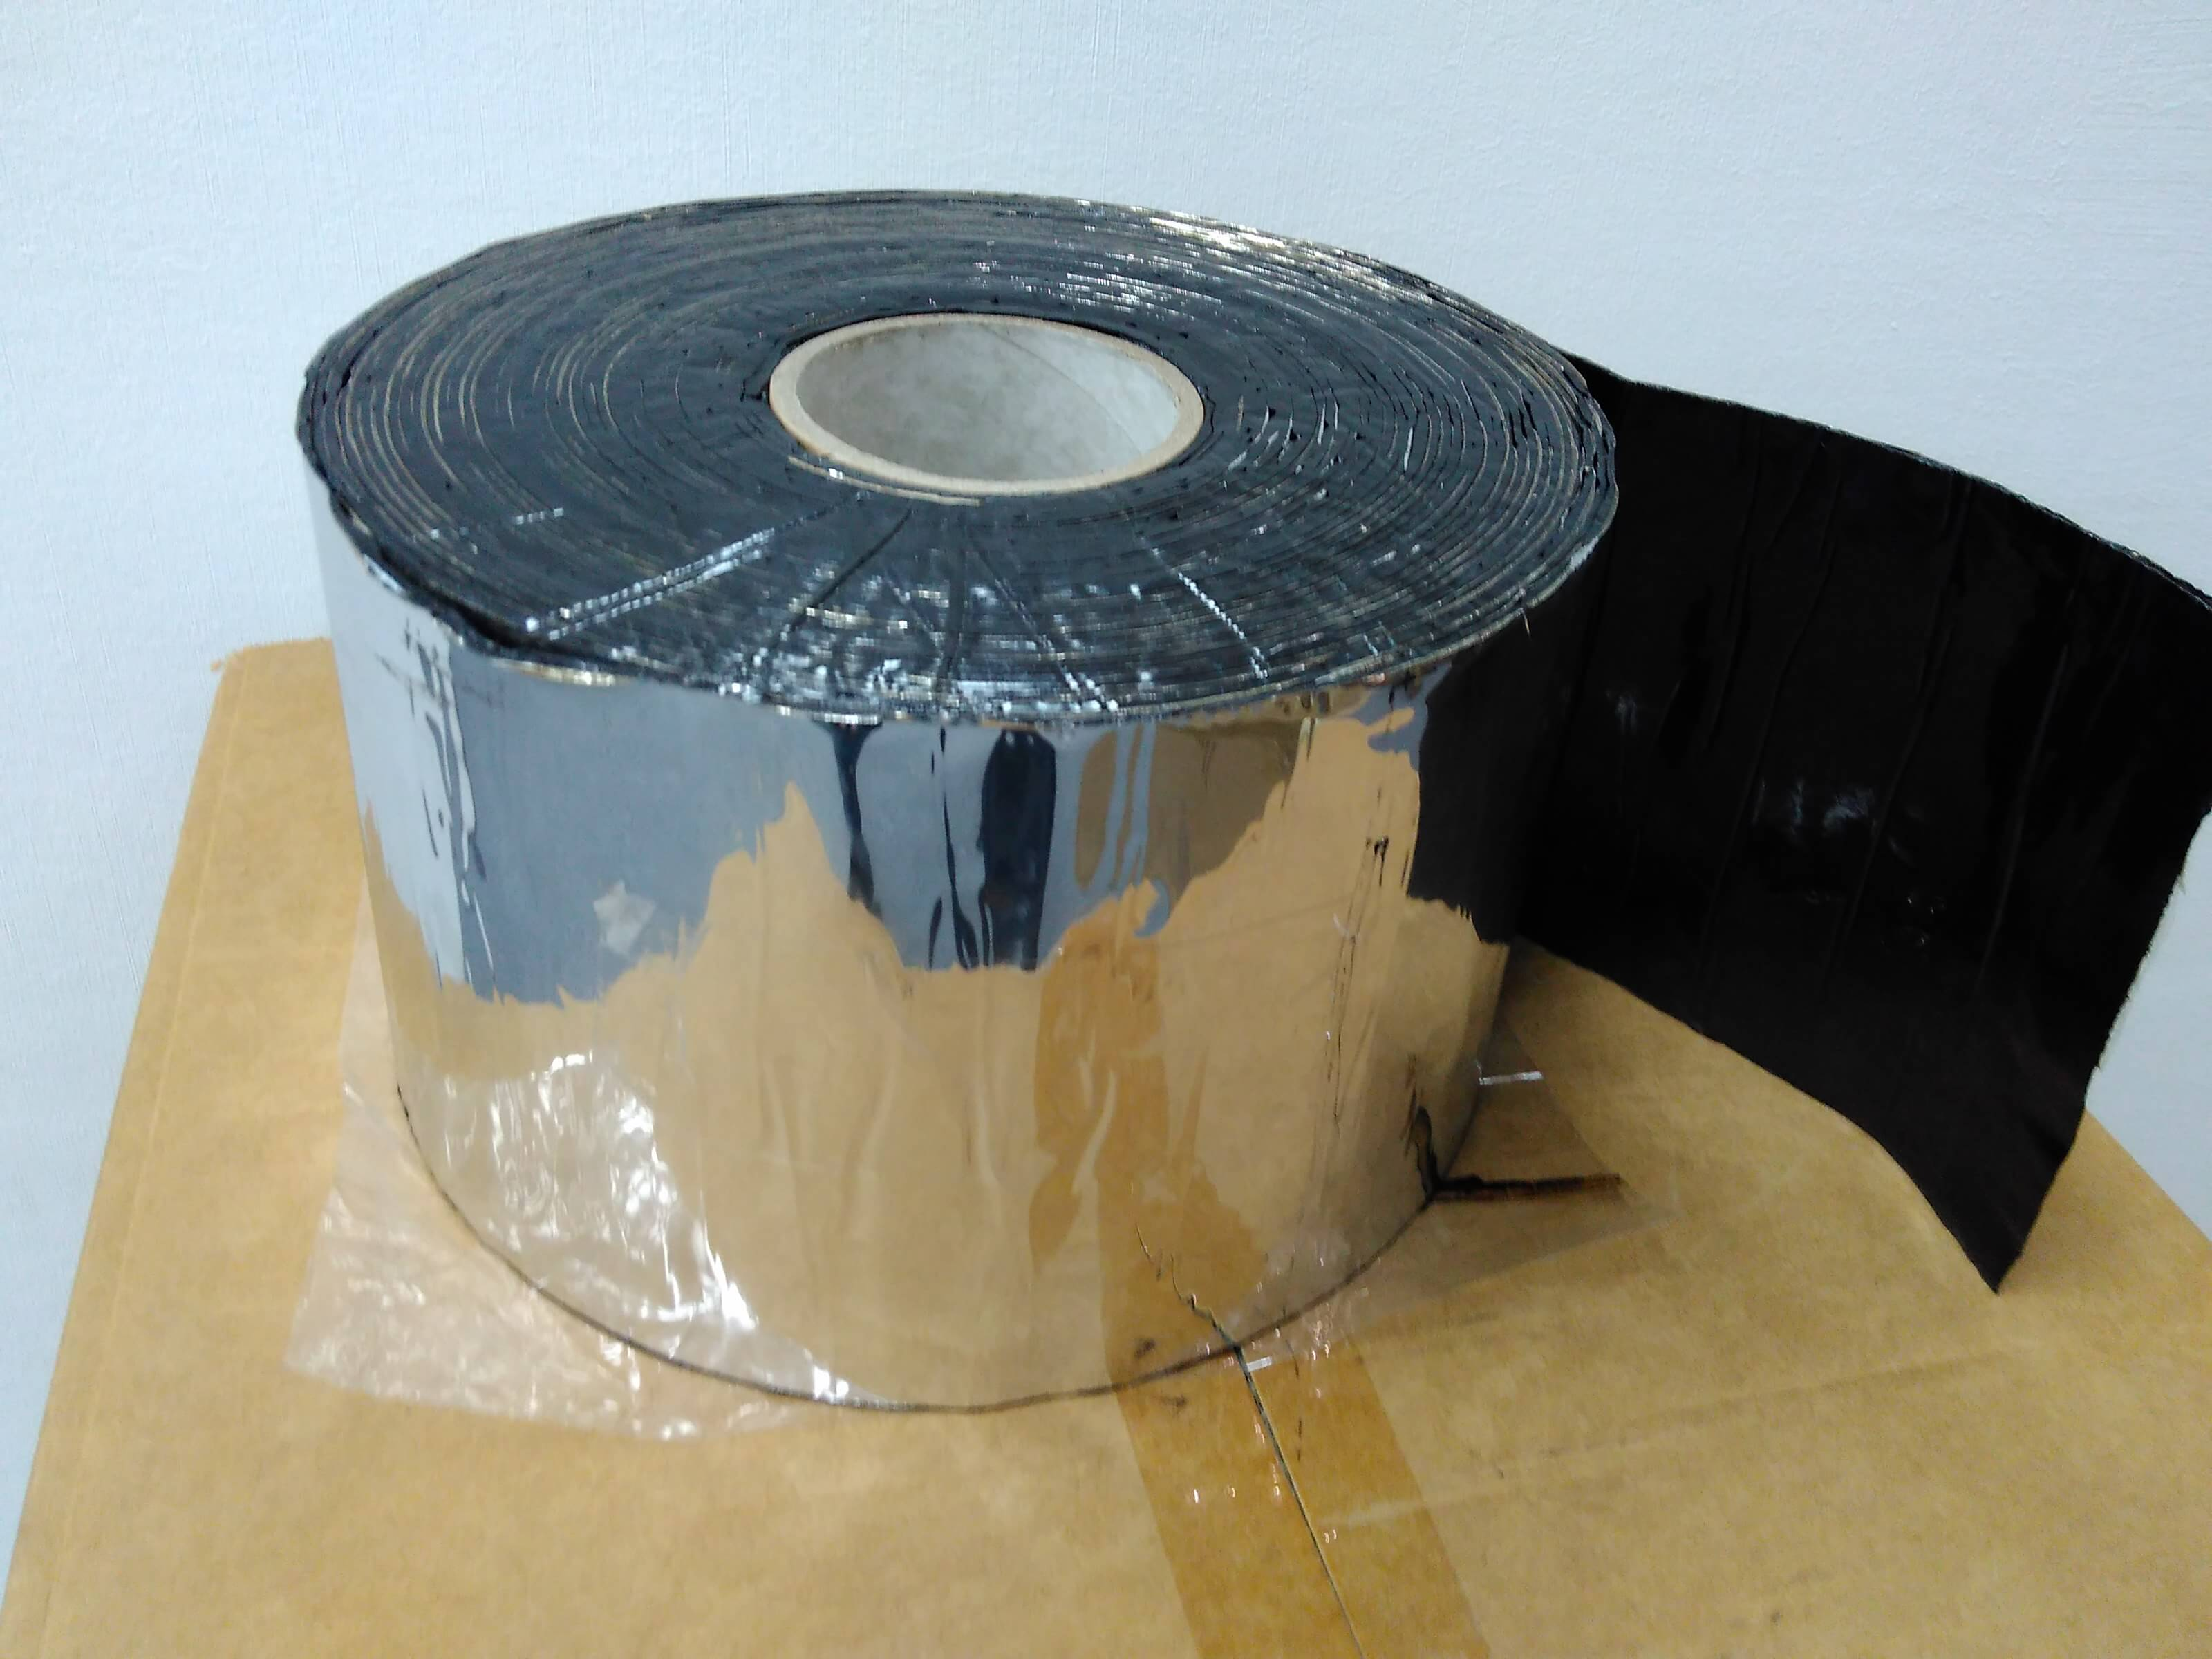 Supplier for Hatch Cover Tapes in Singapore